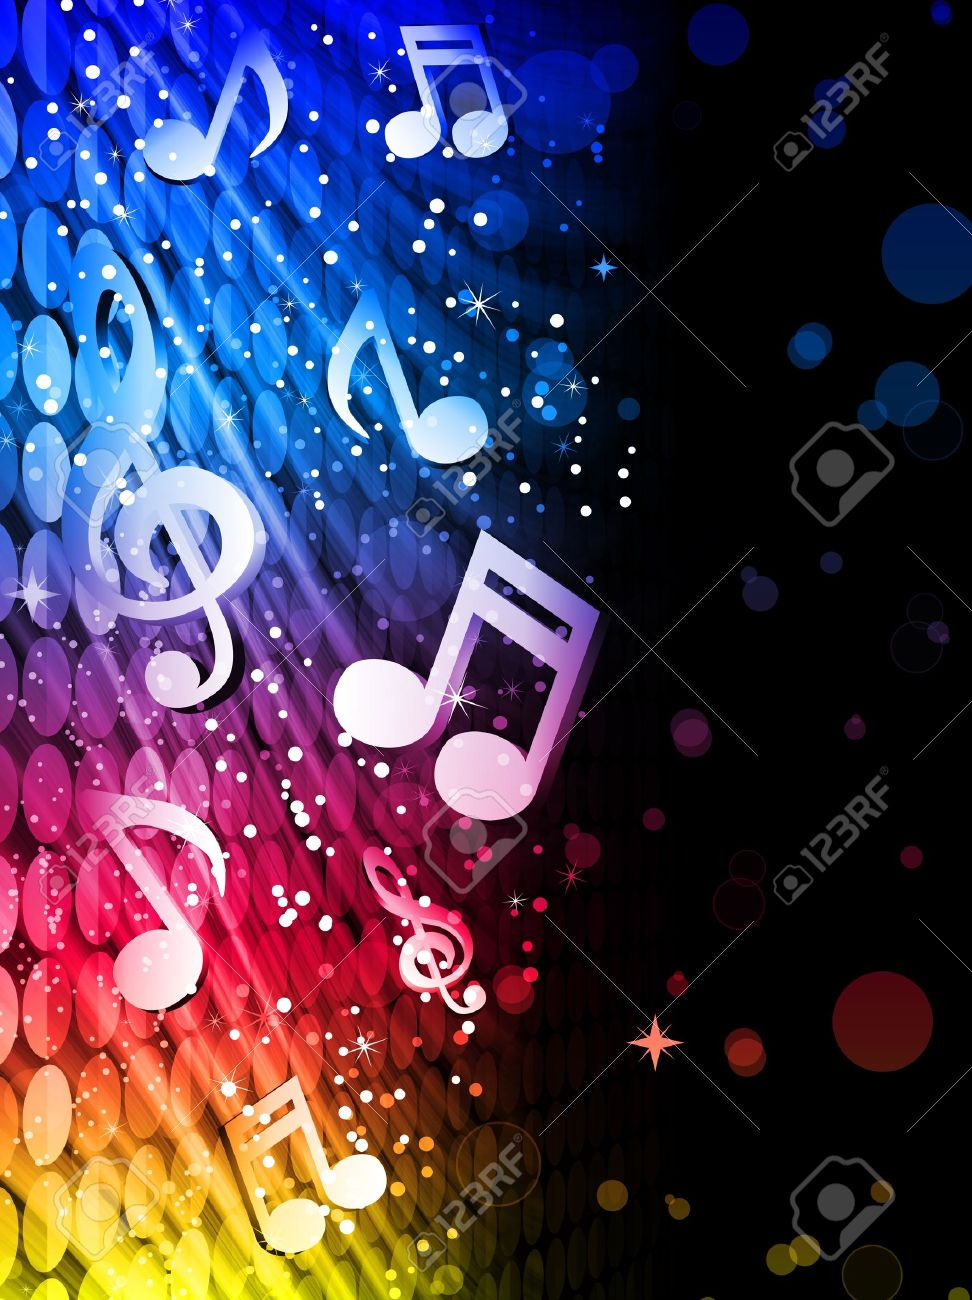 Party Abstract Colorful Waves on Black Background with Music Notes Stock Vector - 8777578